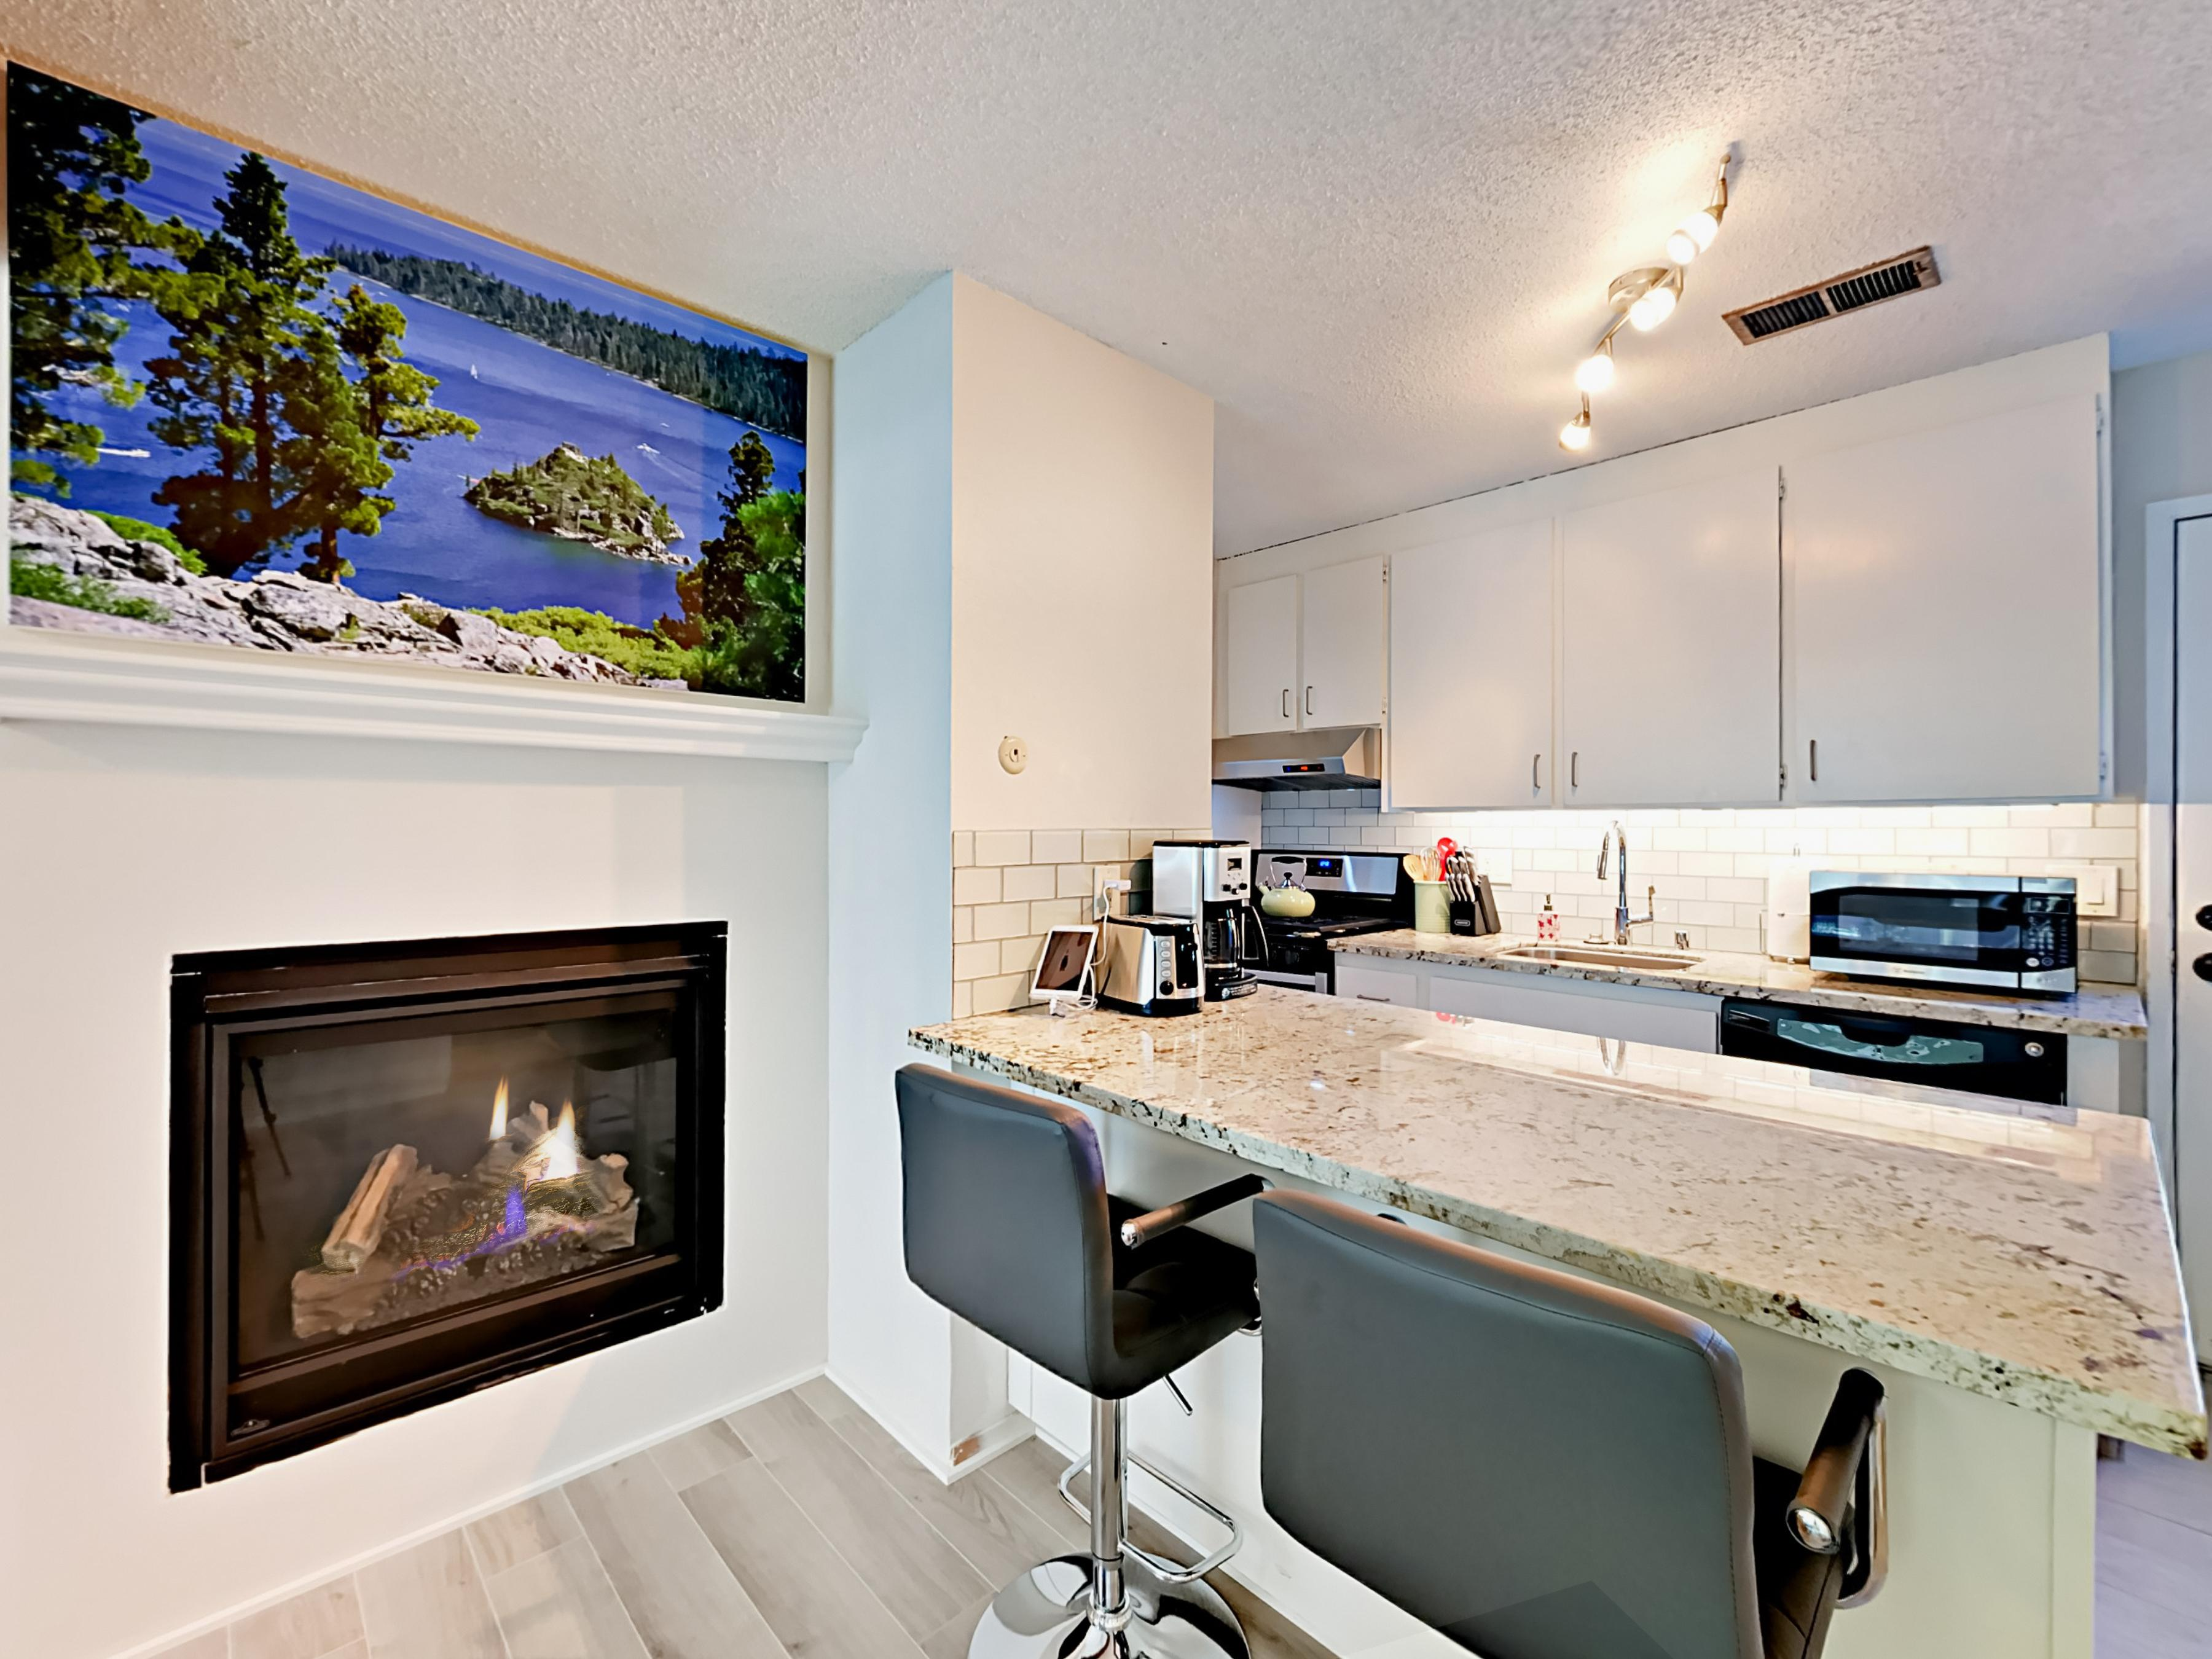 Welcome to South Lake Tahoe! This modern condo is professionally managed by TurnKey Vacation Rentals.